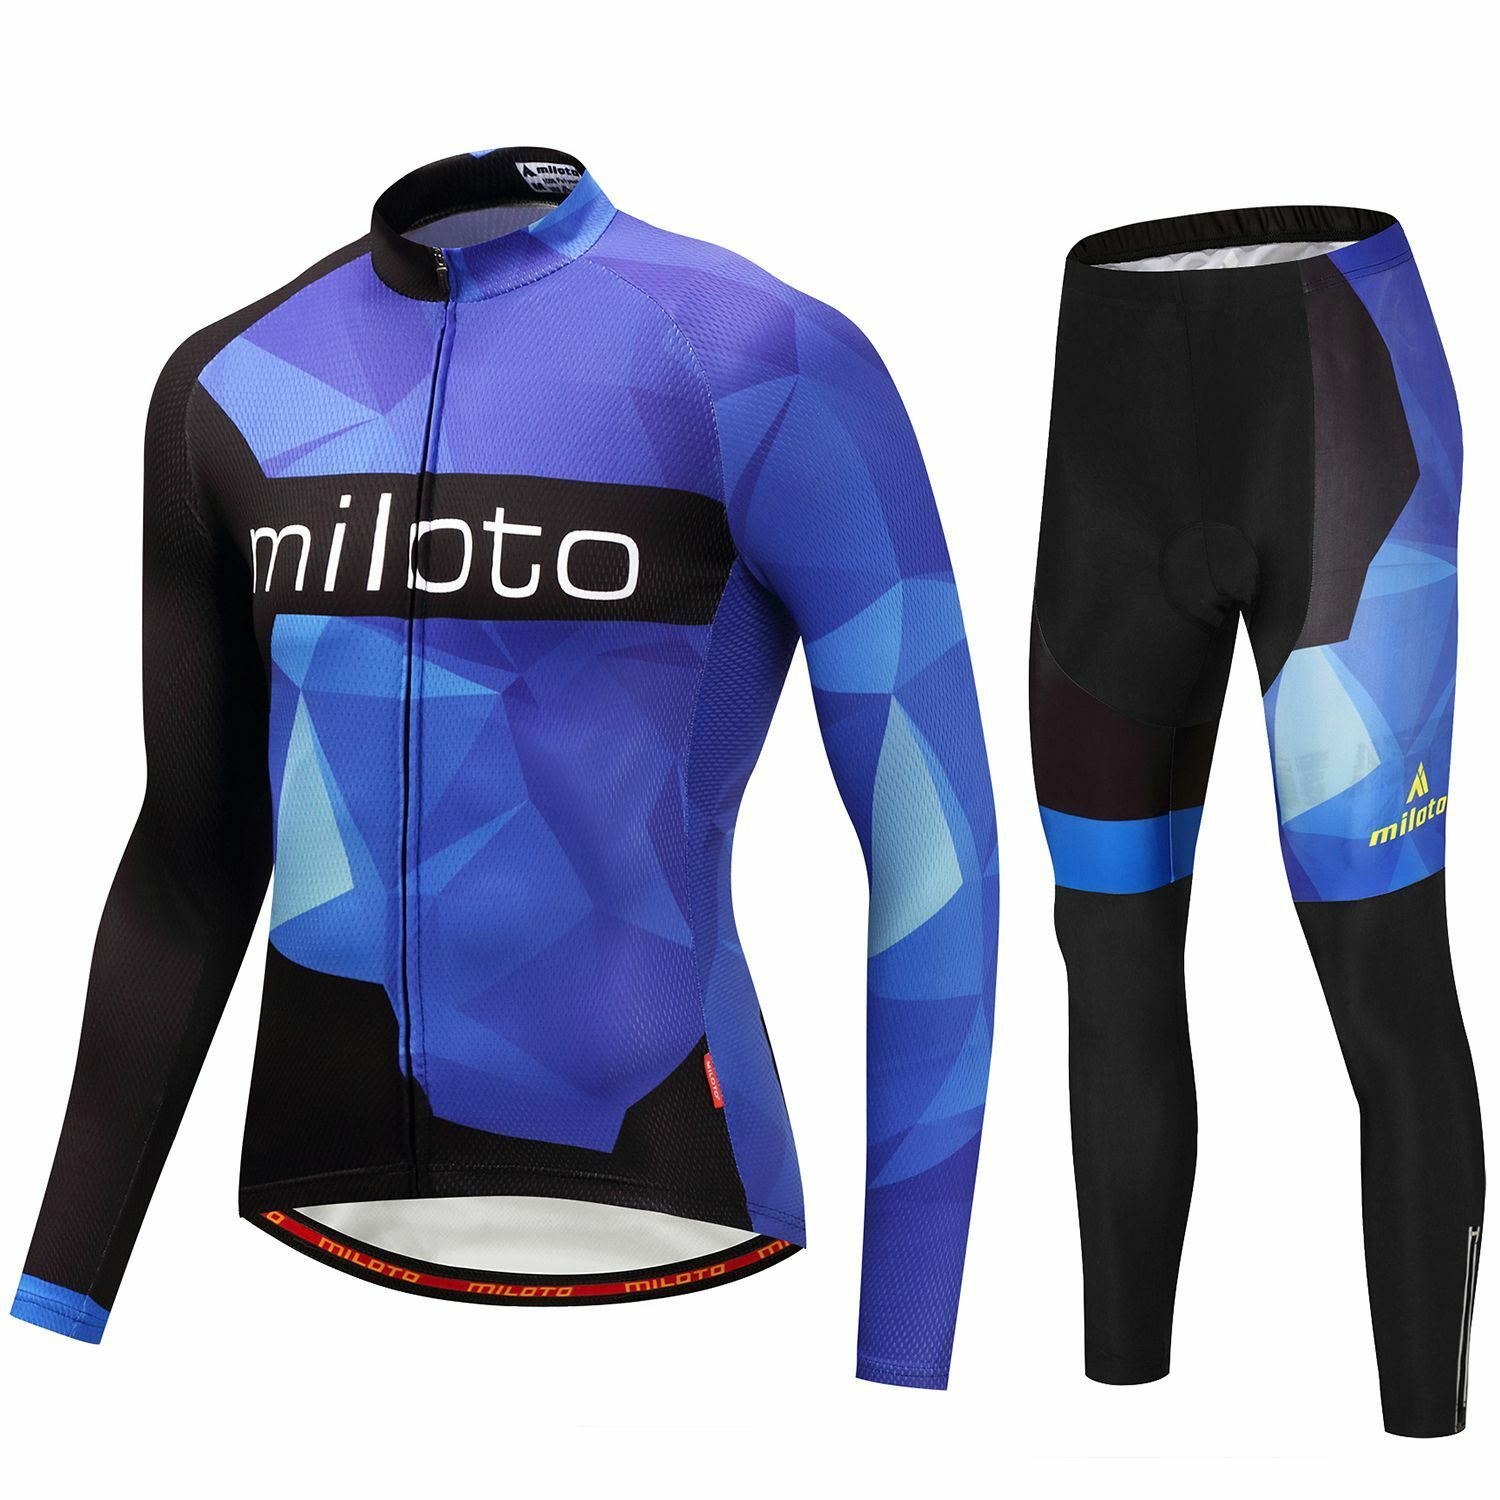 Mens Cycling Clothing Kit Long Sleeve Jersey & Padded (Bib)  Pants Tight Set bluee  discounts and more